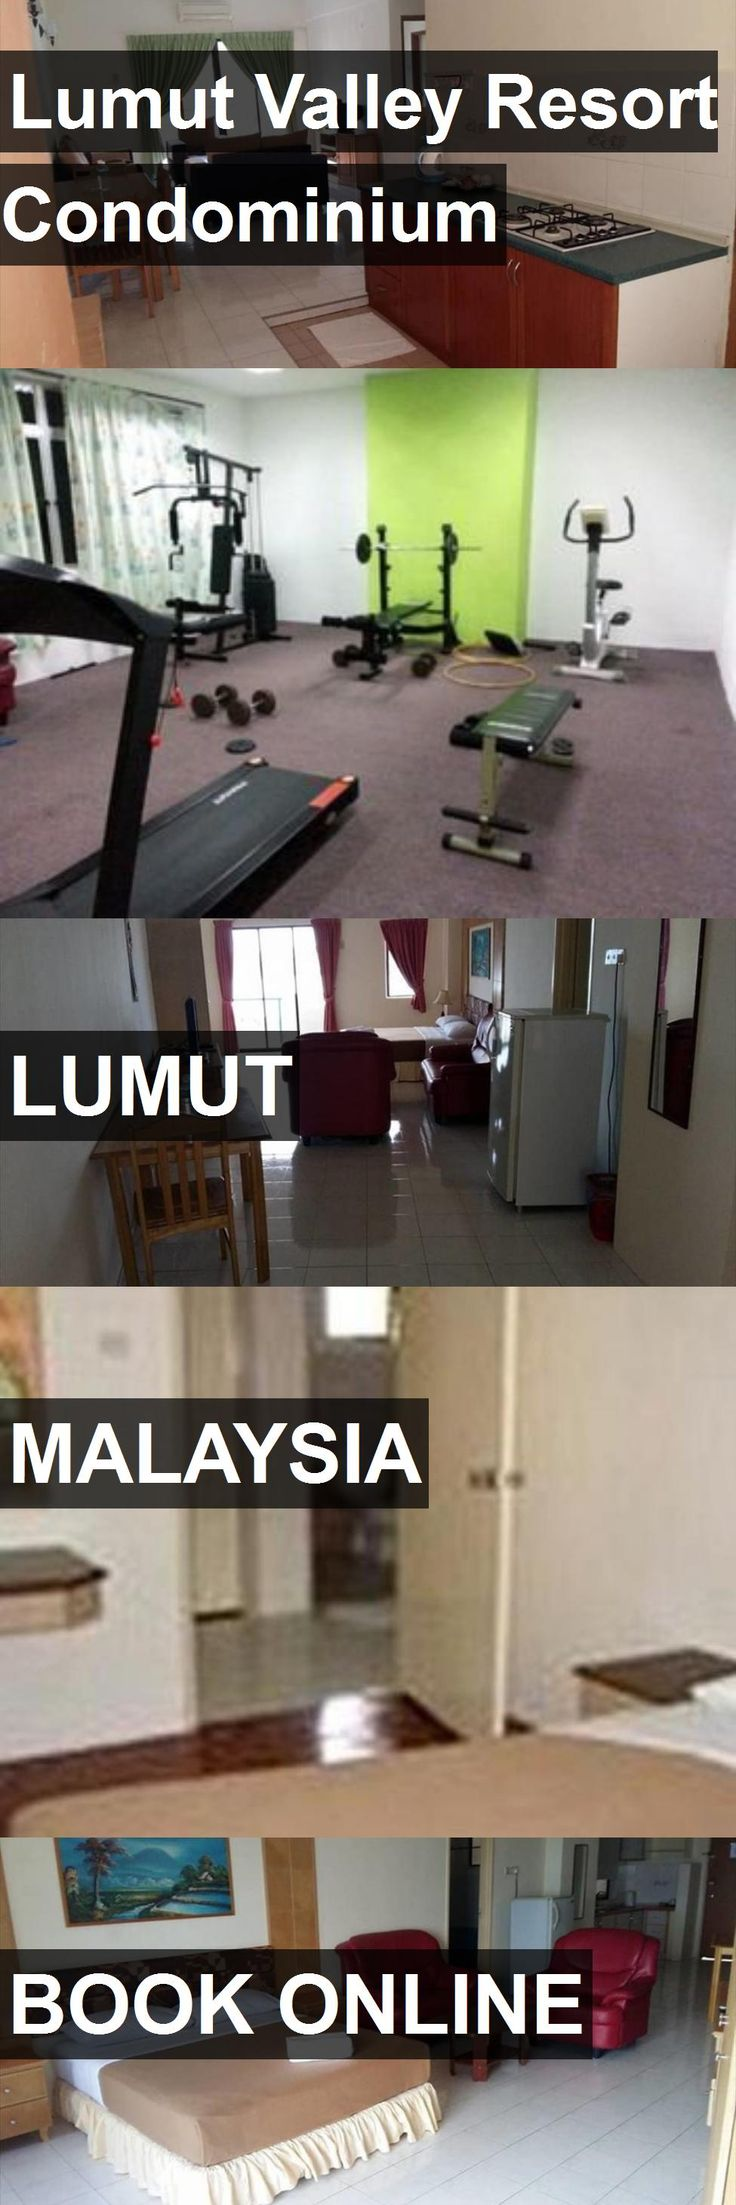 Hotel Lumut Valley Resort Condominium in Lumut, Malaysia. For more information, photos, reviews and best prices please follow the link. #Malaysia #Lumut #travel #vacation #hotel